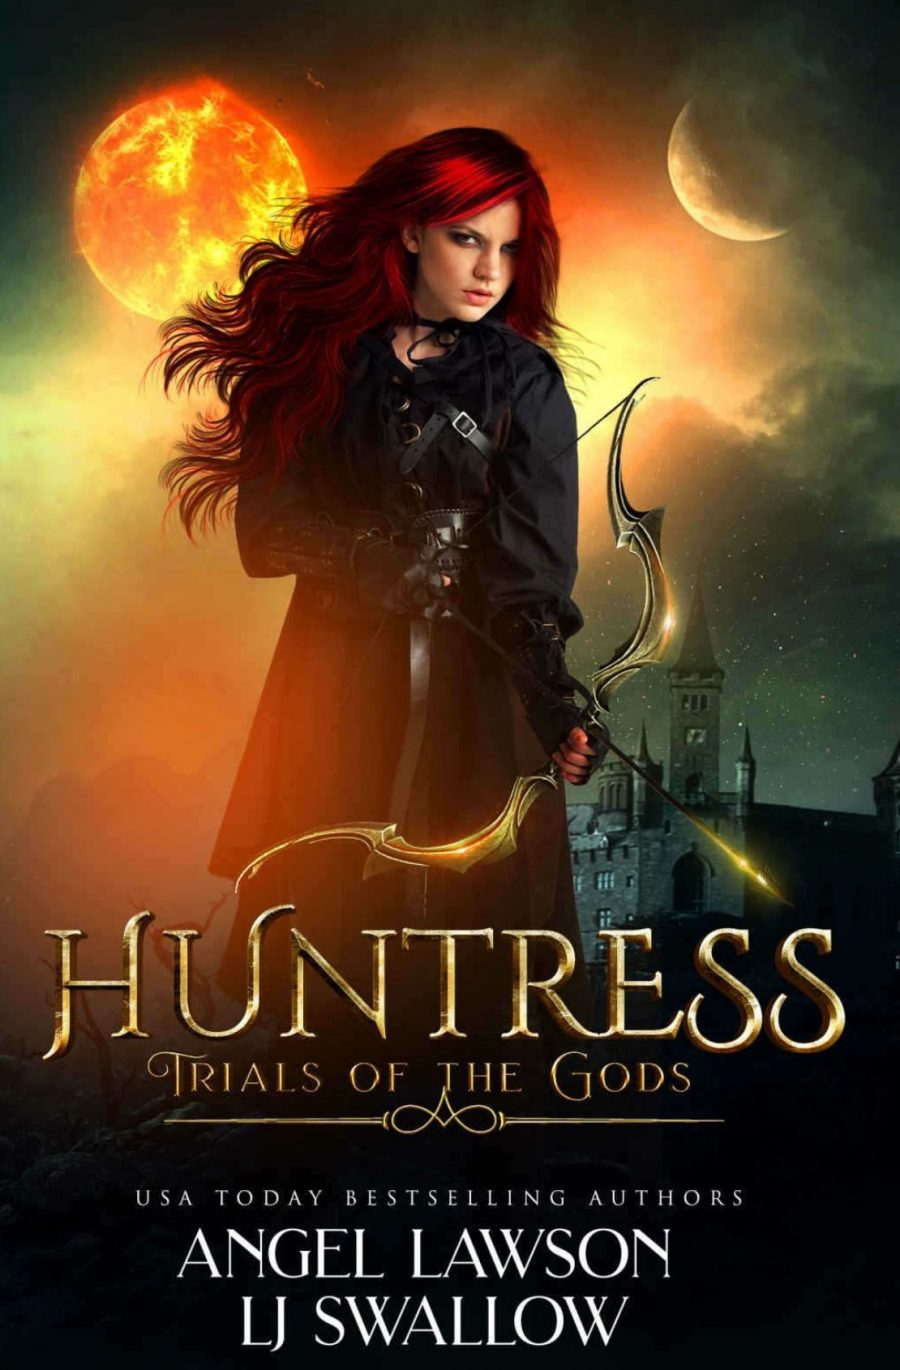 Huntress by Angel Lawson and L.J. Swallow – A Book Review